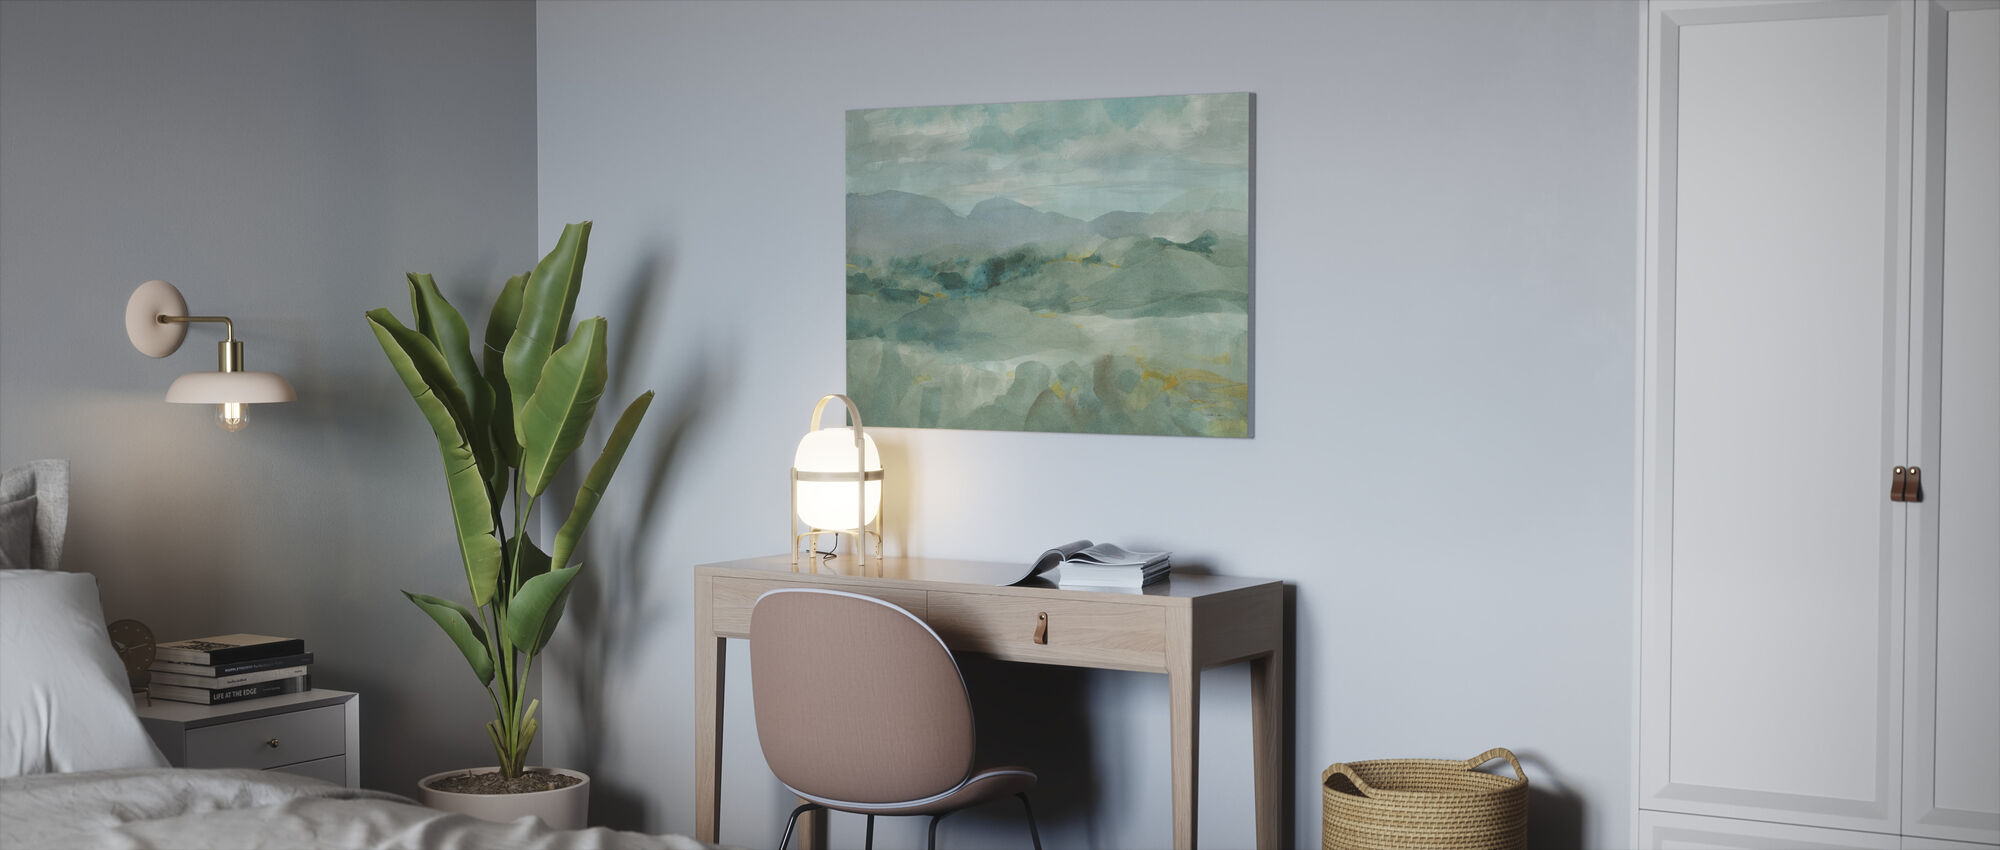 Green Mountain View - Canvas print - Office